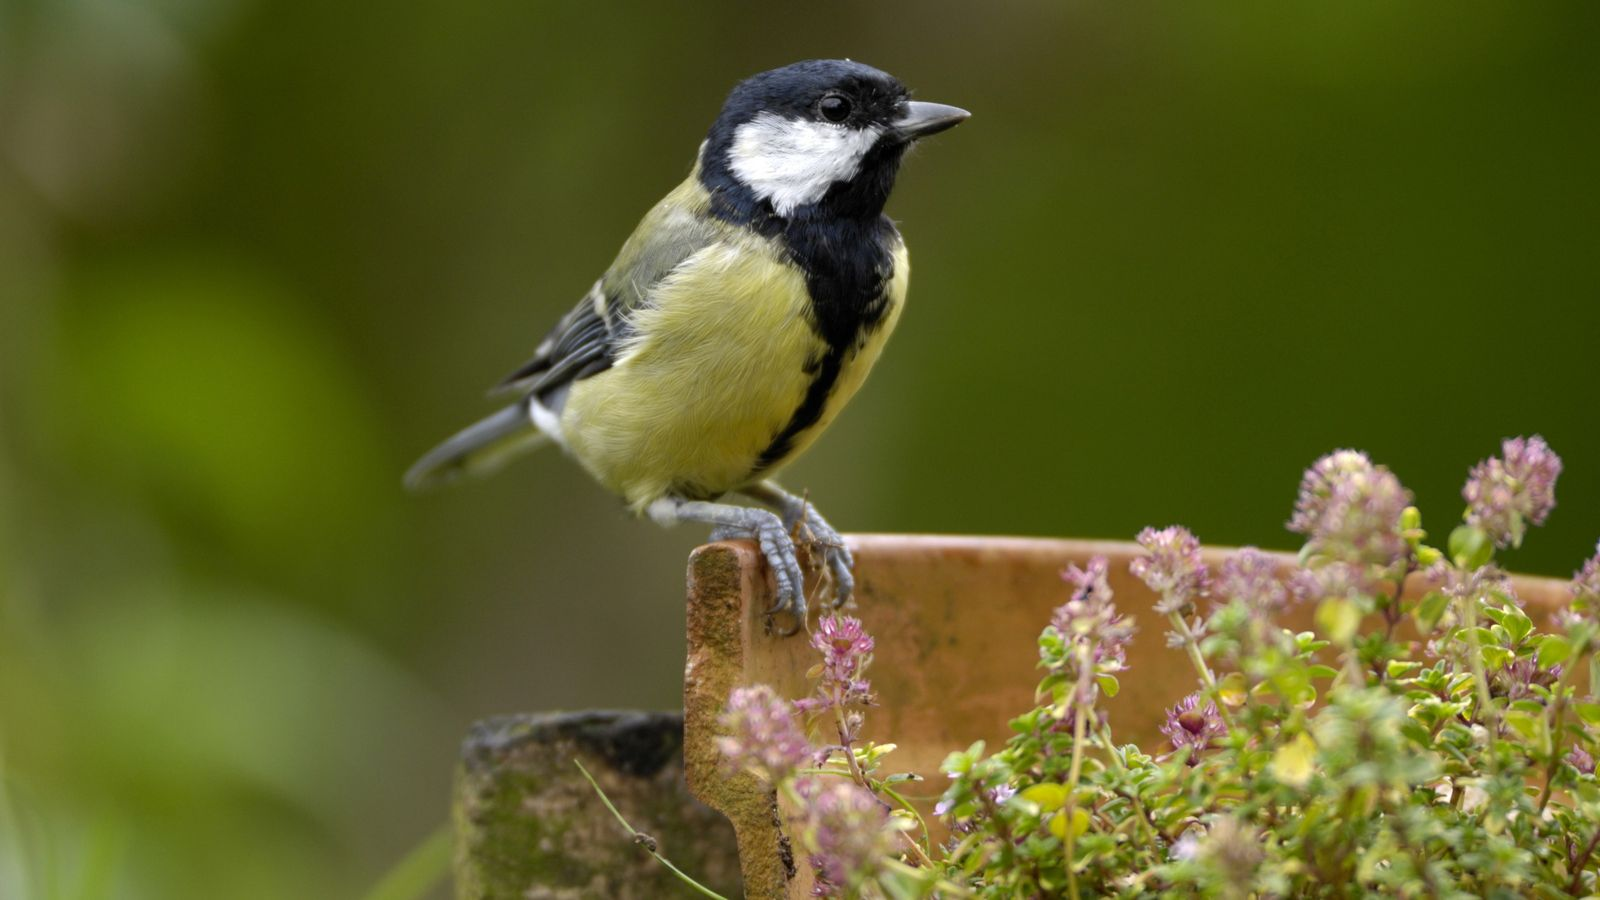 The great tit is actually a woodland bird that has successfully adapted to man-made habitats and ...